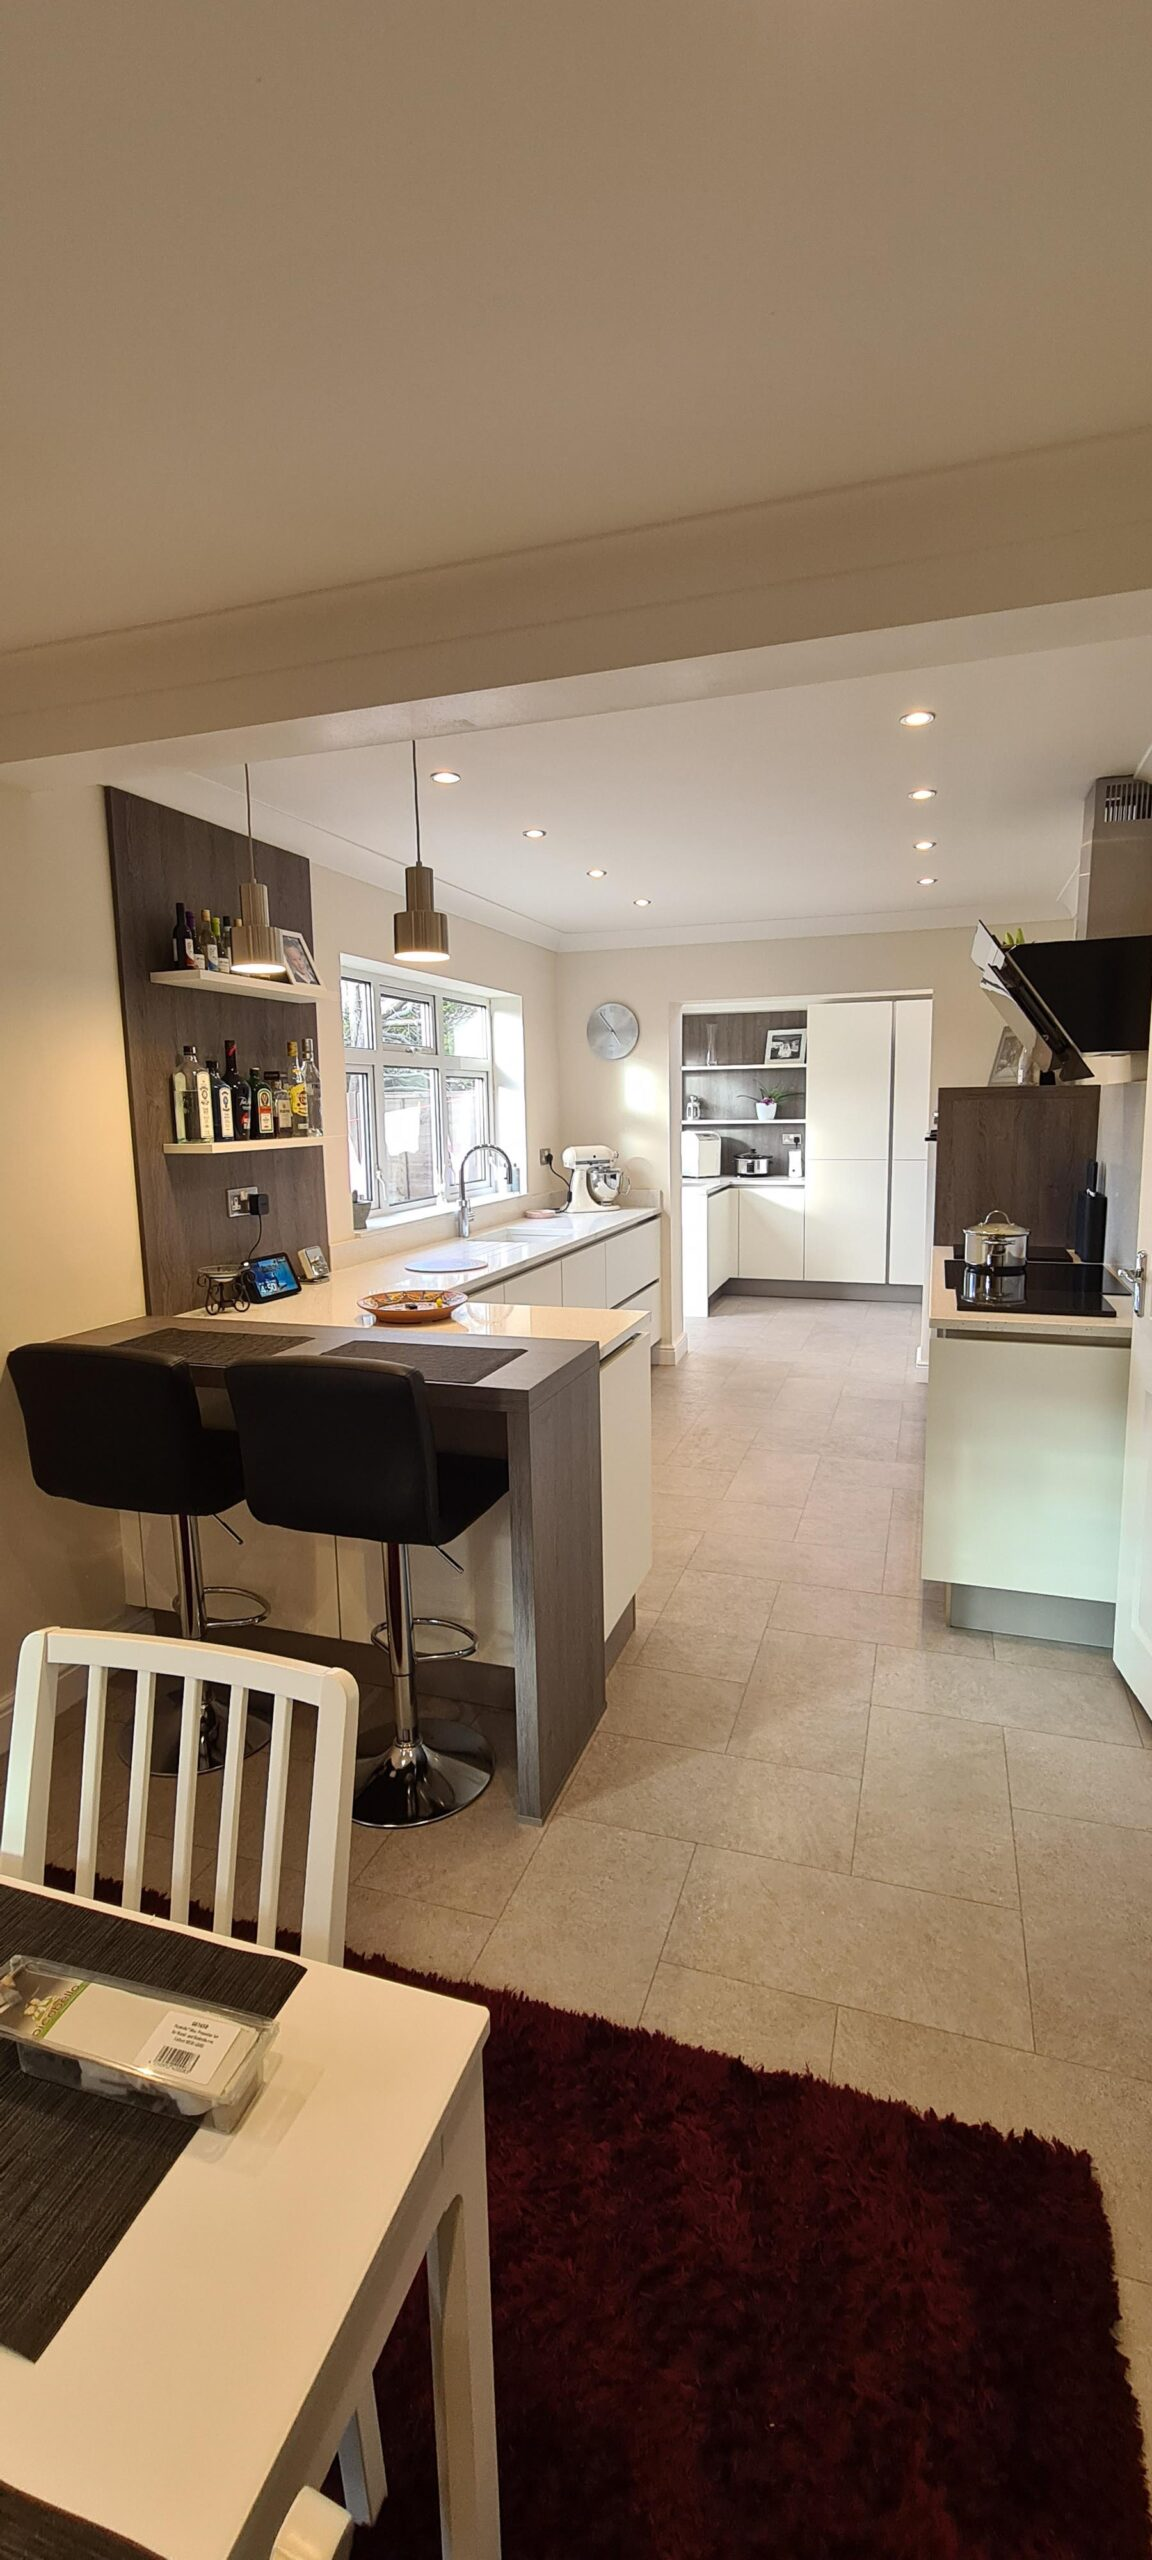 An image of a kitchen with a white marble L shaped counter and a table for eating